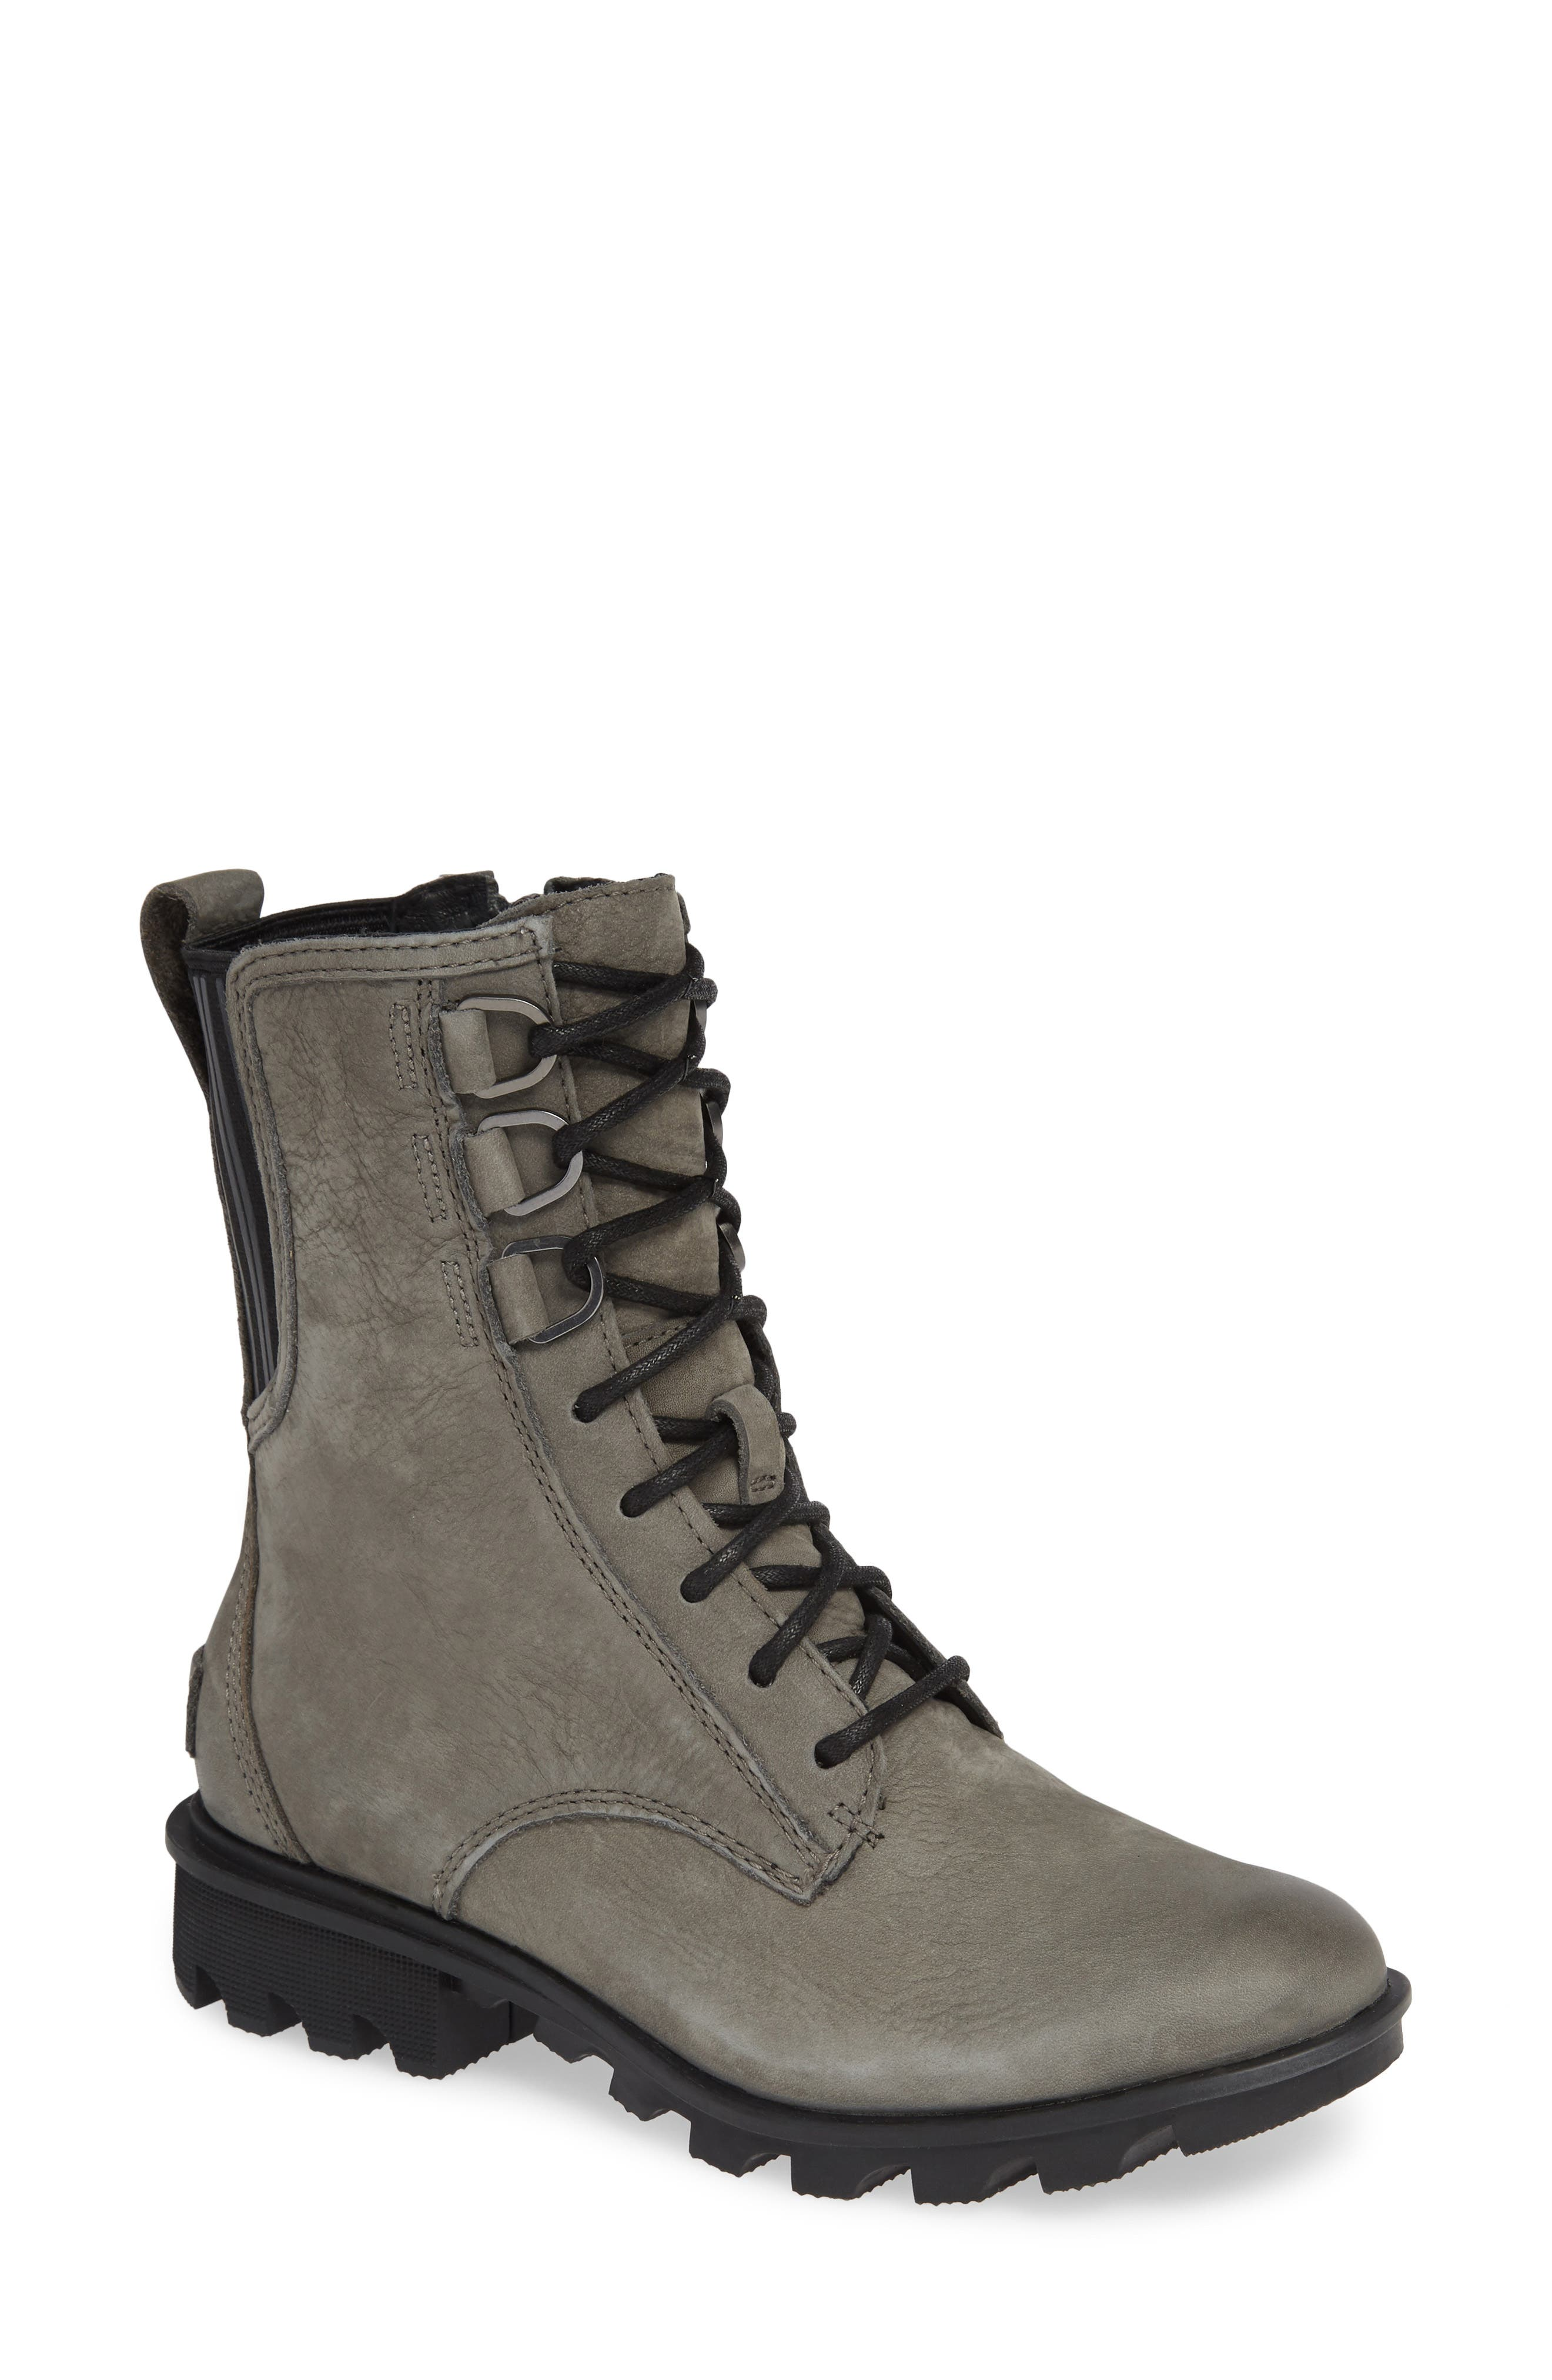 Sorel Phoenix Lace-Up Boot, Grey